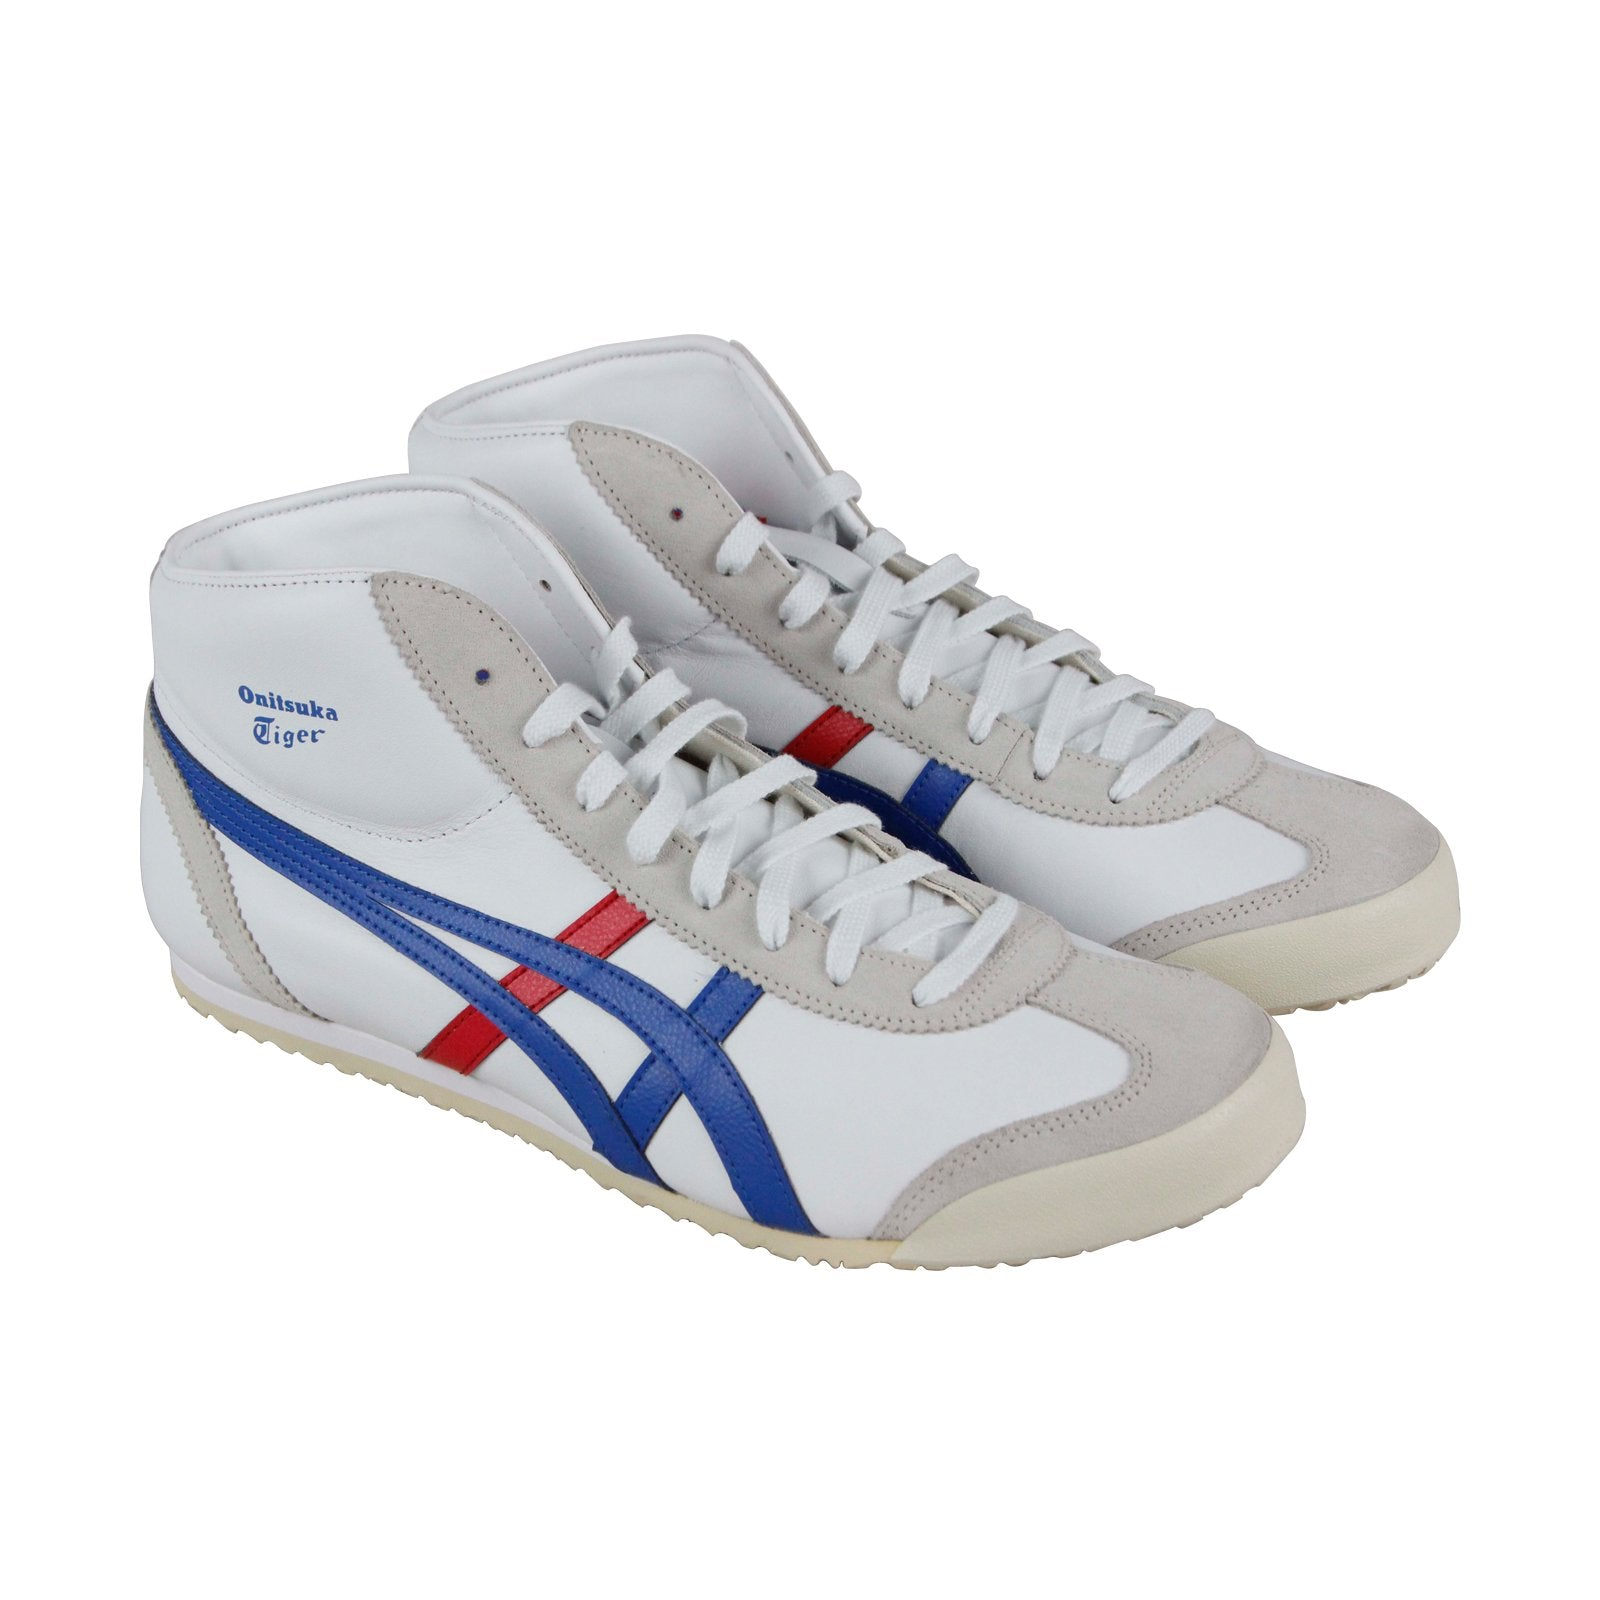 finest selection 26dbe 5ddb6 Onitsuka Tiger Mexico Mid Runner Mens White Leather Low Top Sneakers Shoes